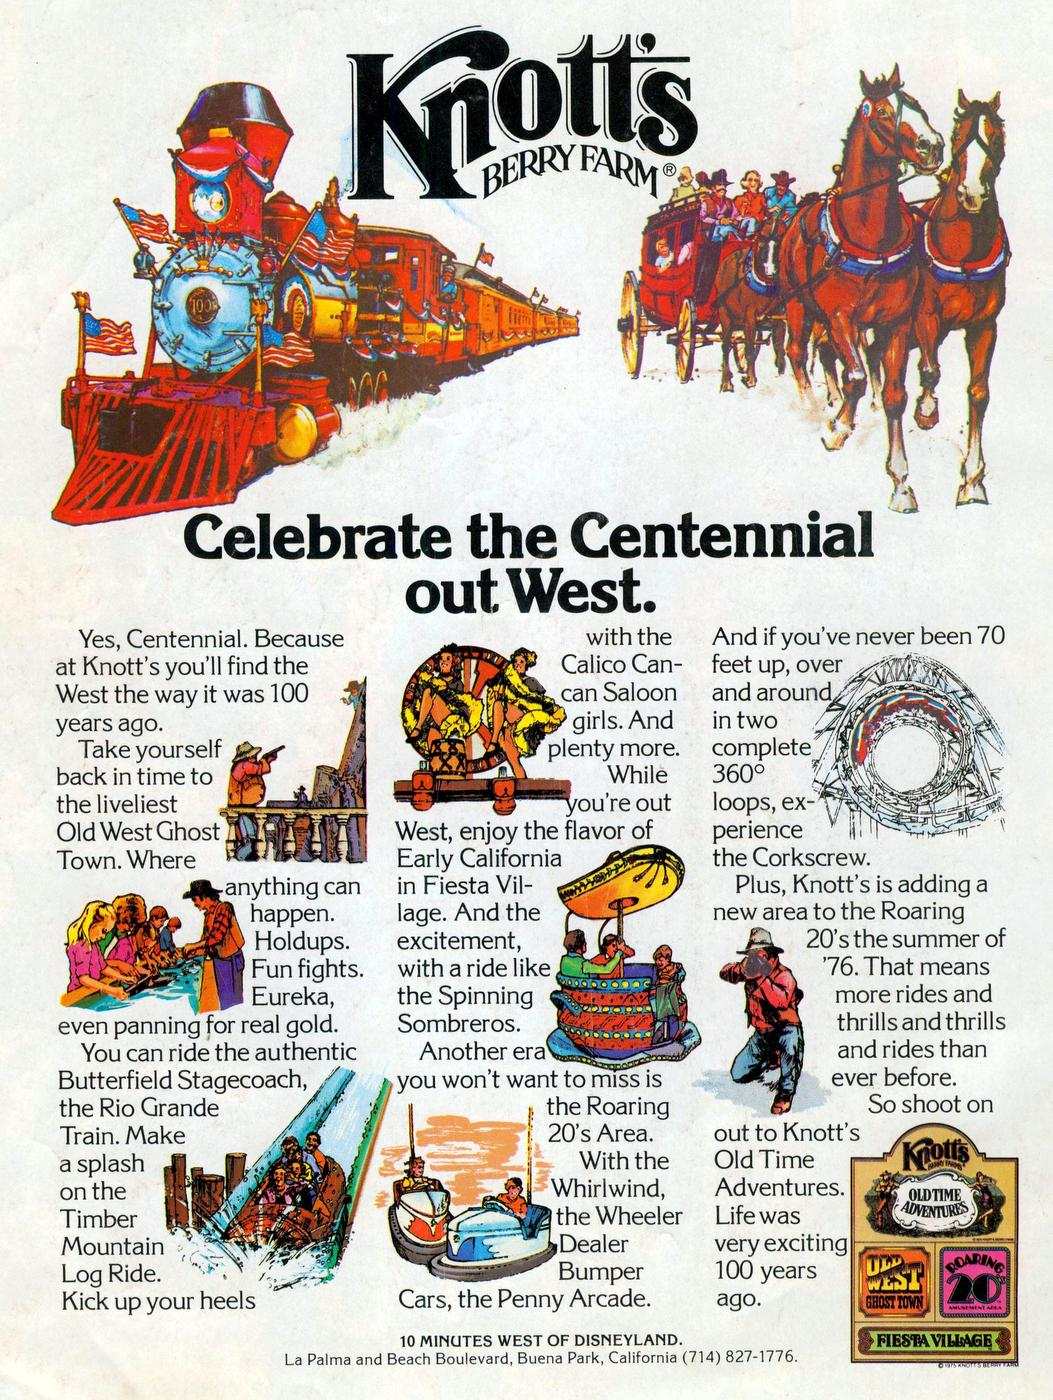 Knott's Berry Farm - Celebrate the Centennial 1976